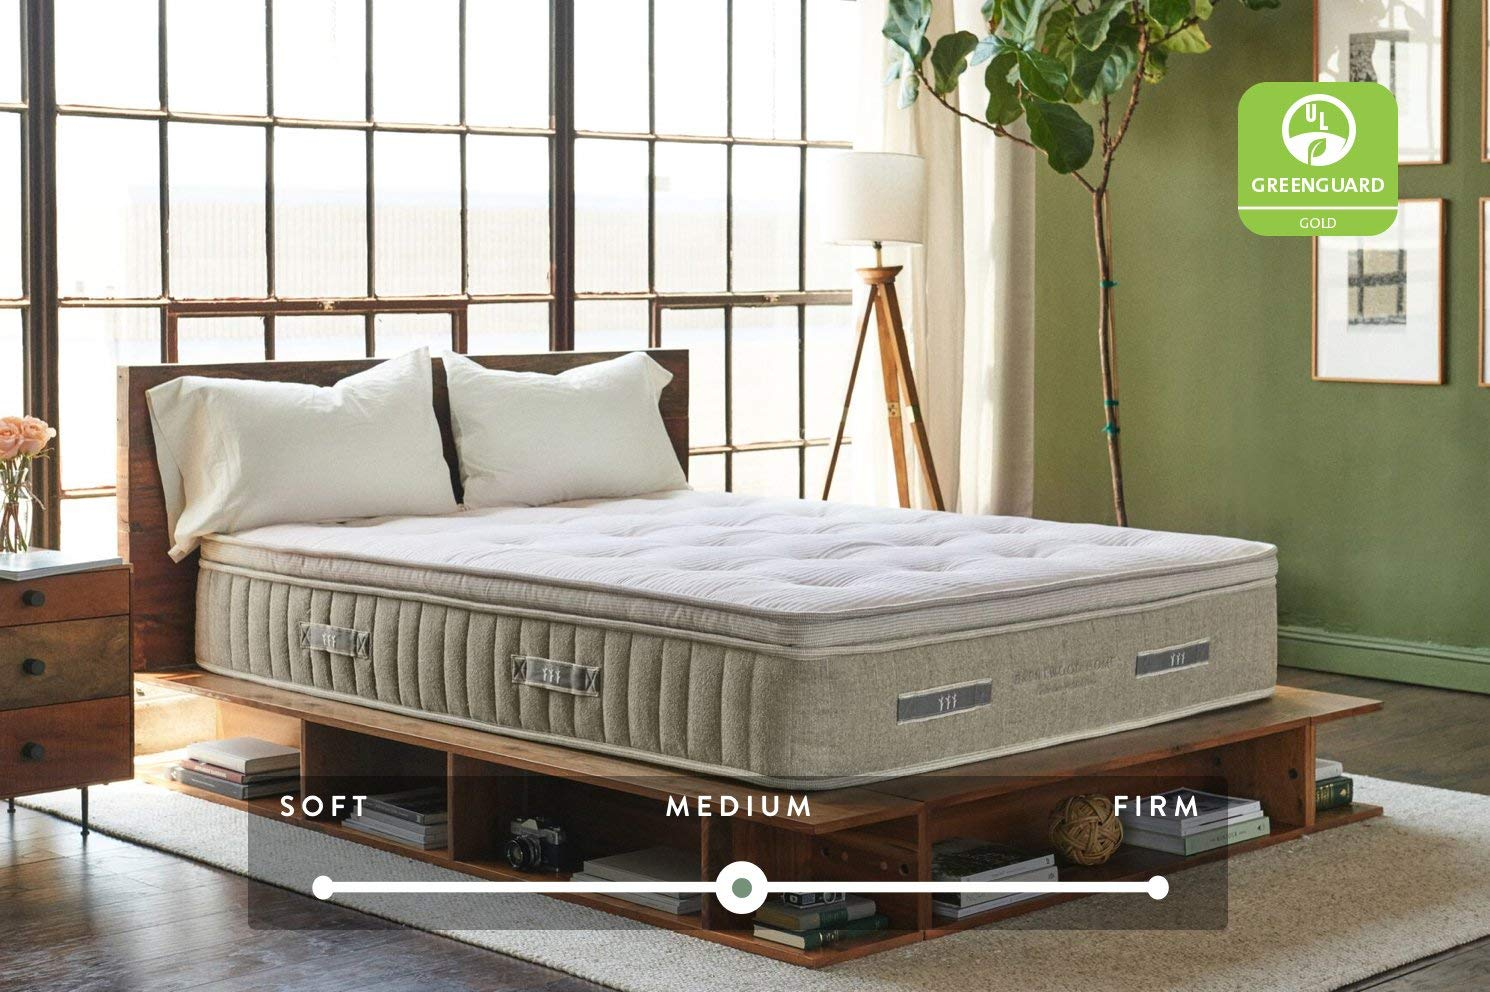 Brentwood Home Best Mattress Review by www.snoremagazine.com